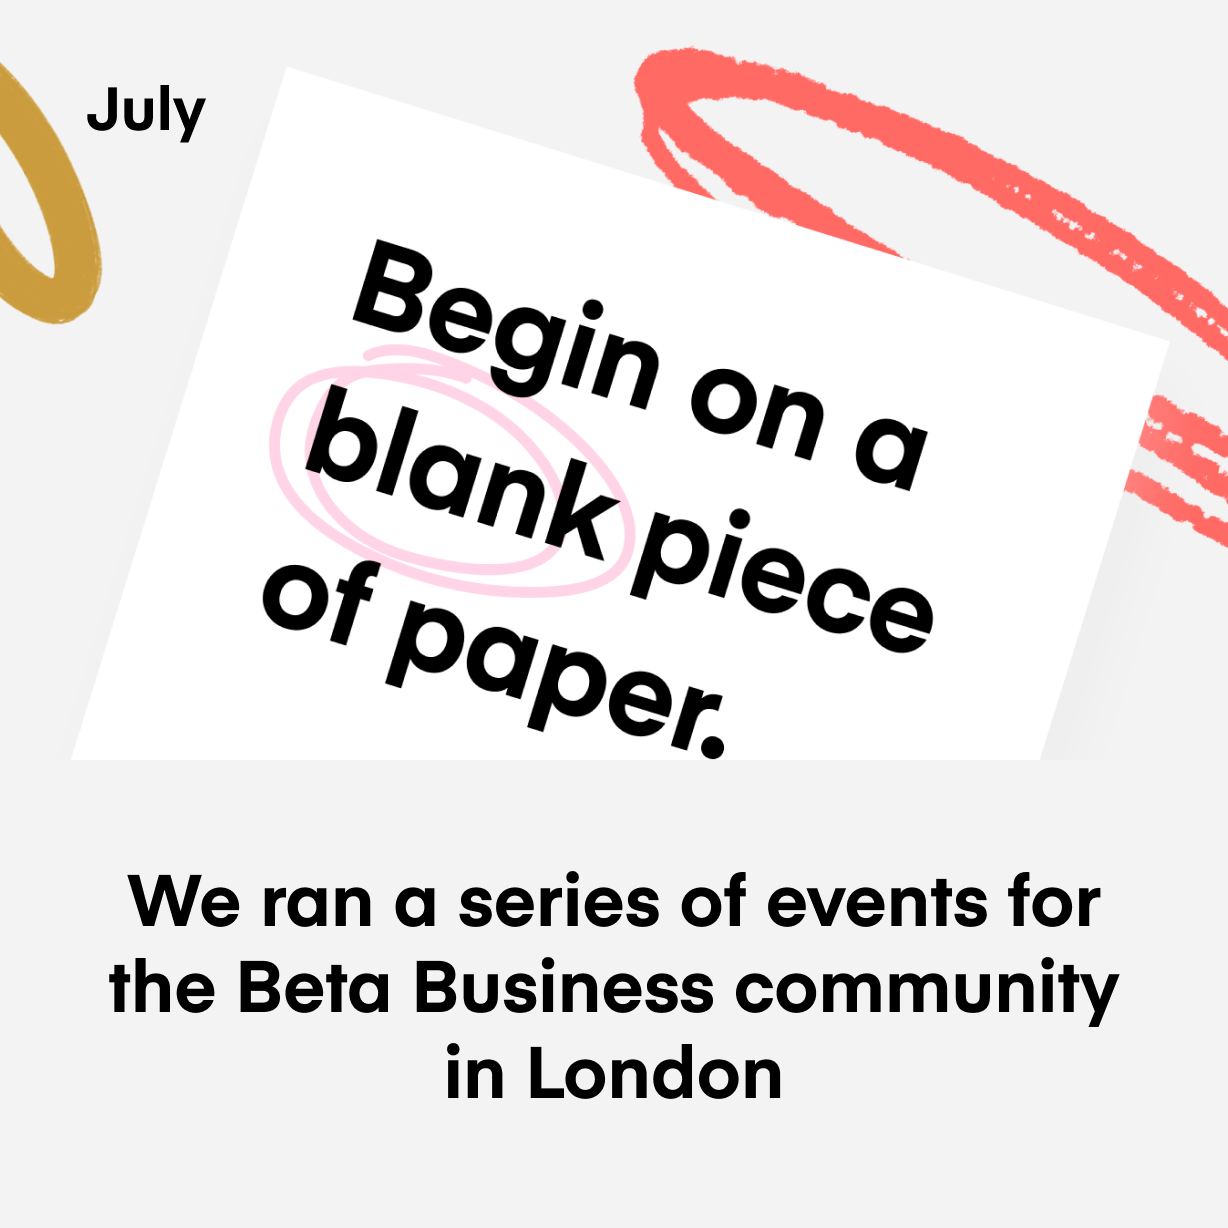 We ran a series of events for the Beta Business community in London